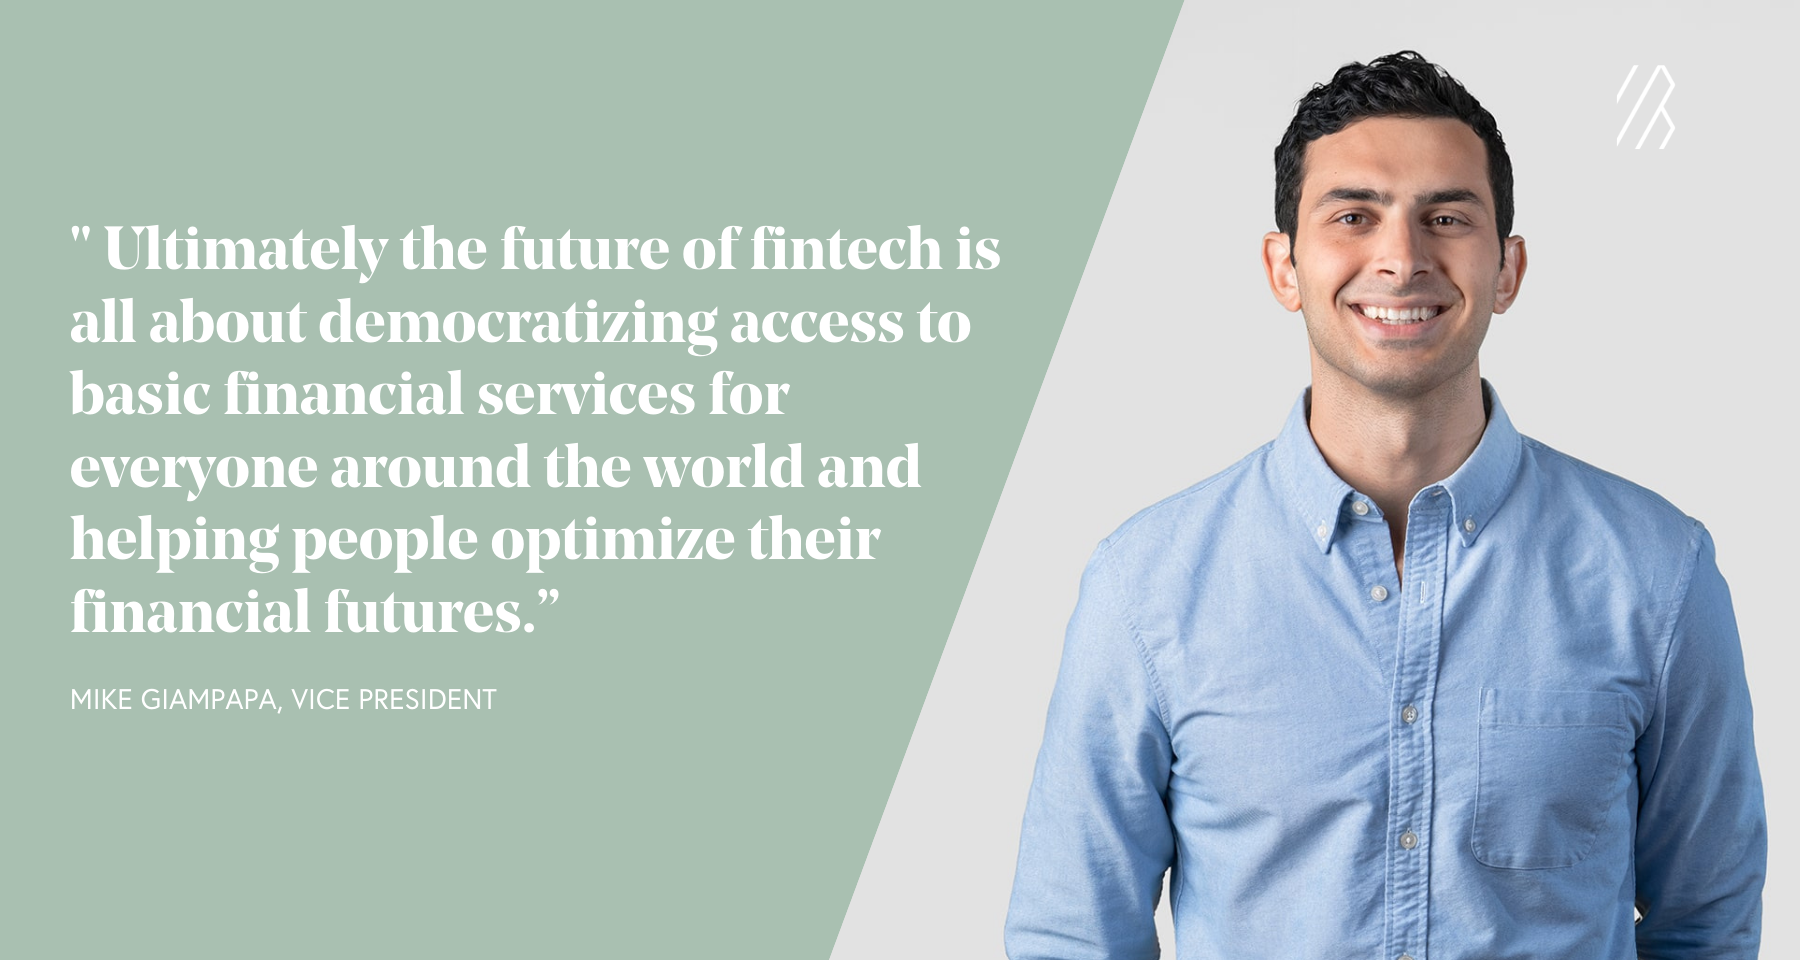 Photo of man in blue shirt with a text pullout quote about the future of fintech